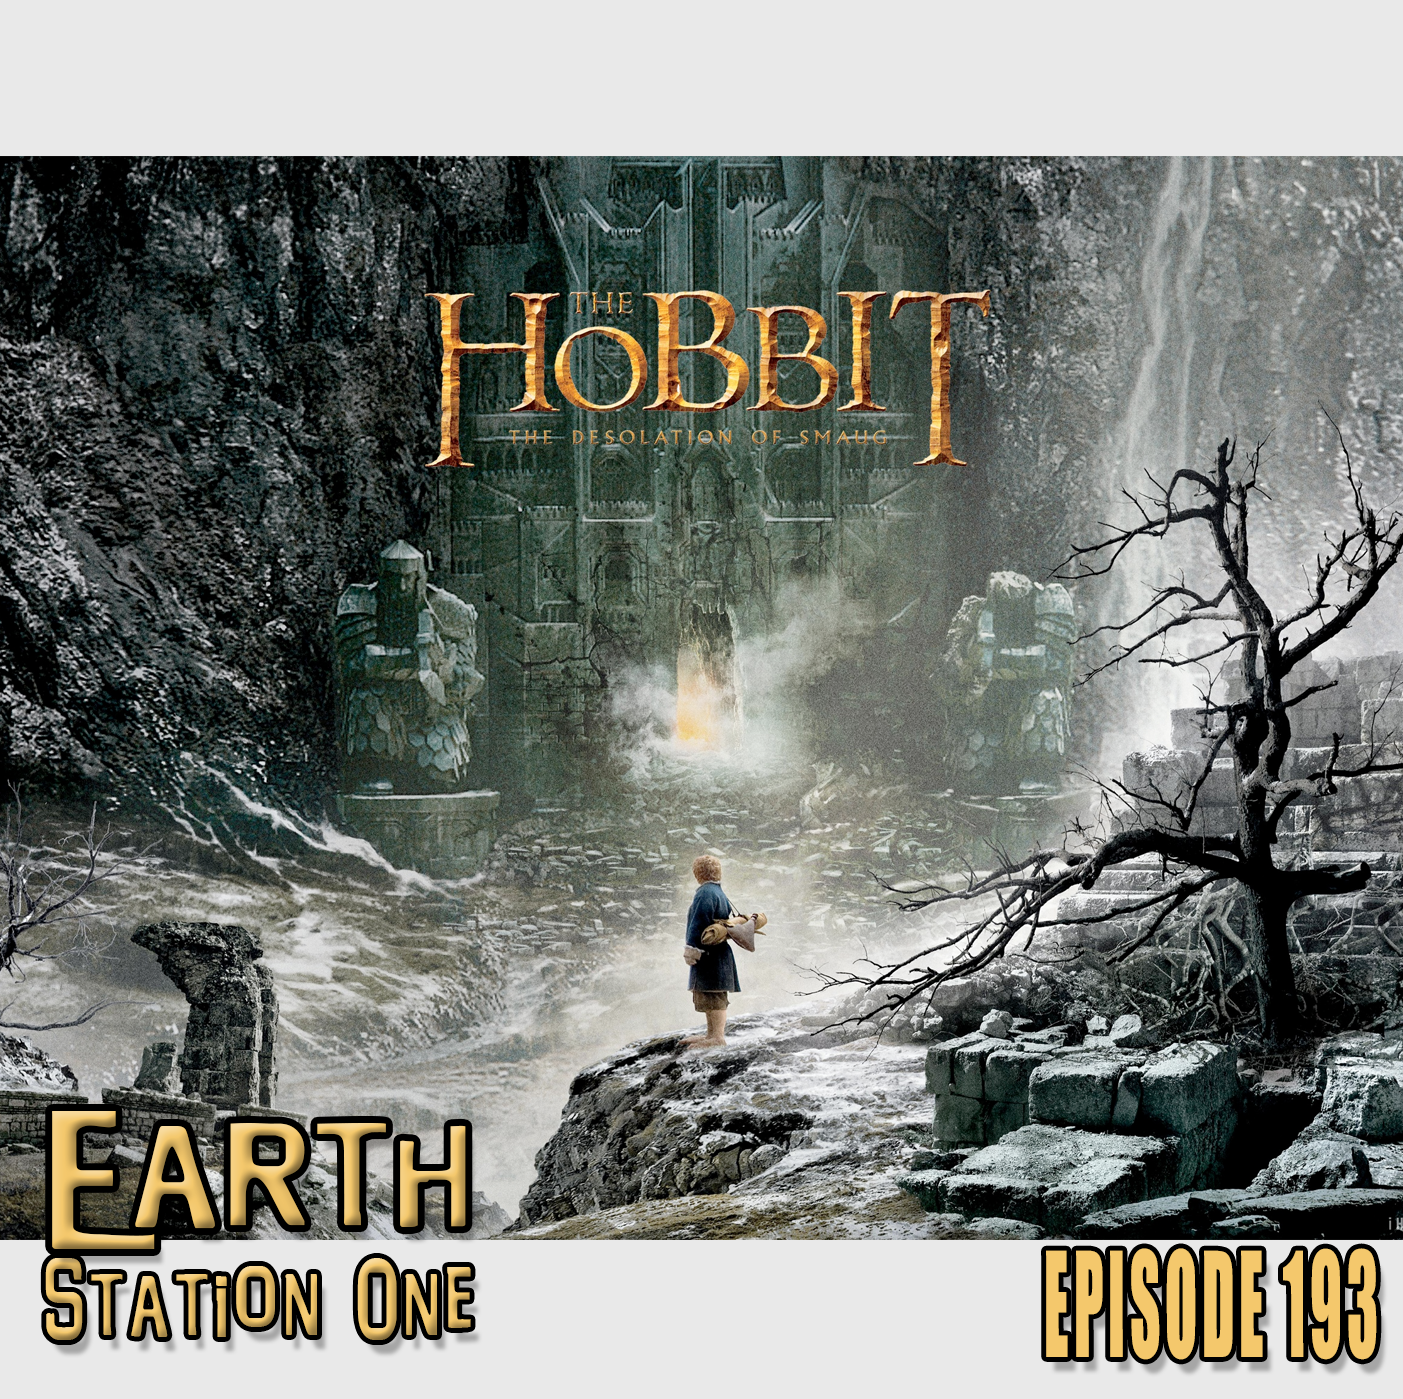 Earth Station One Ep 193